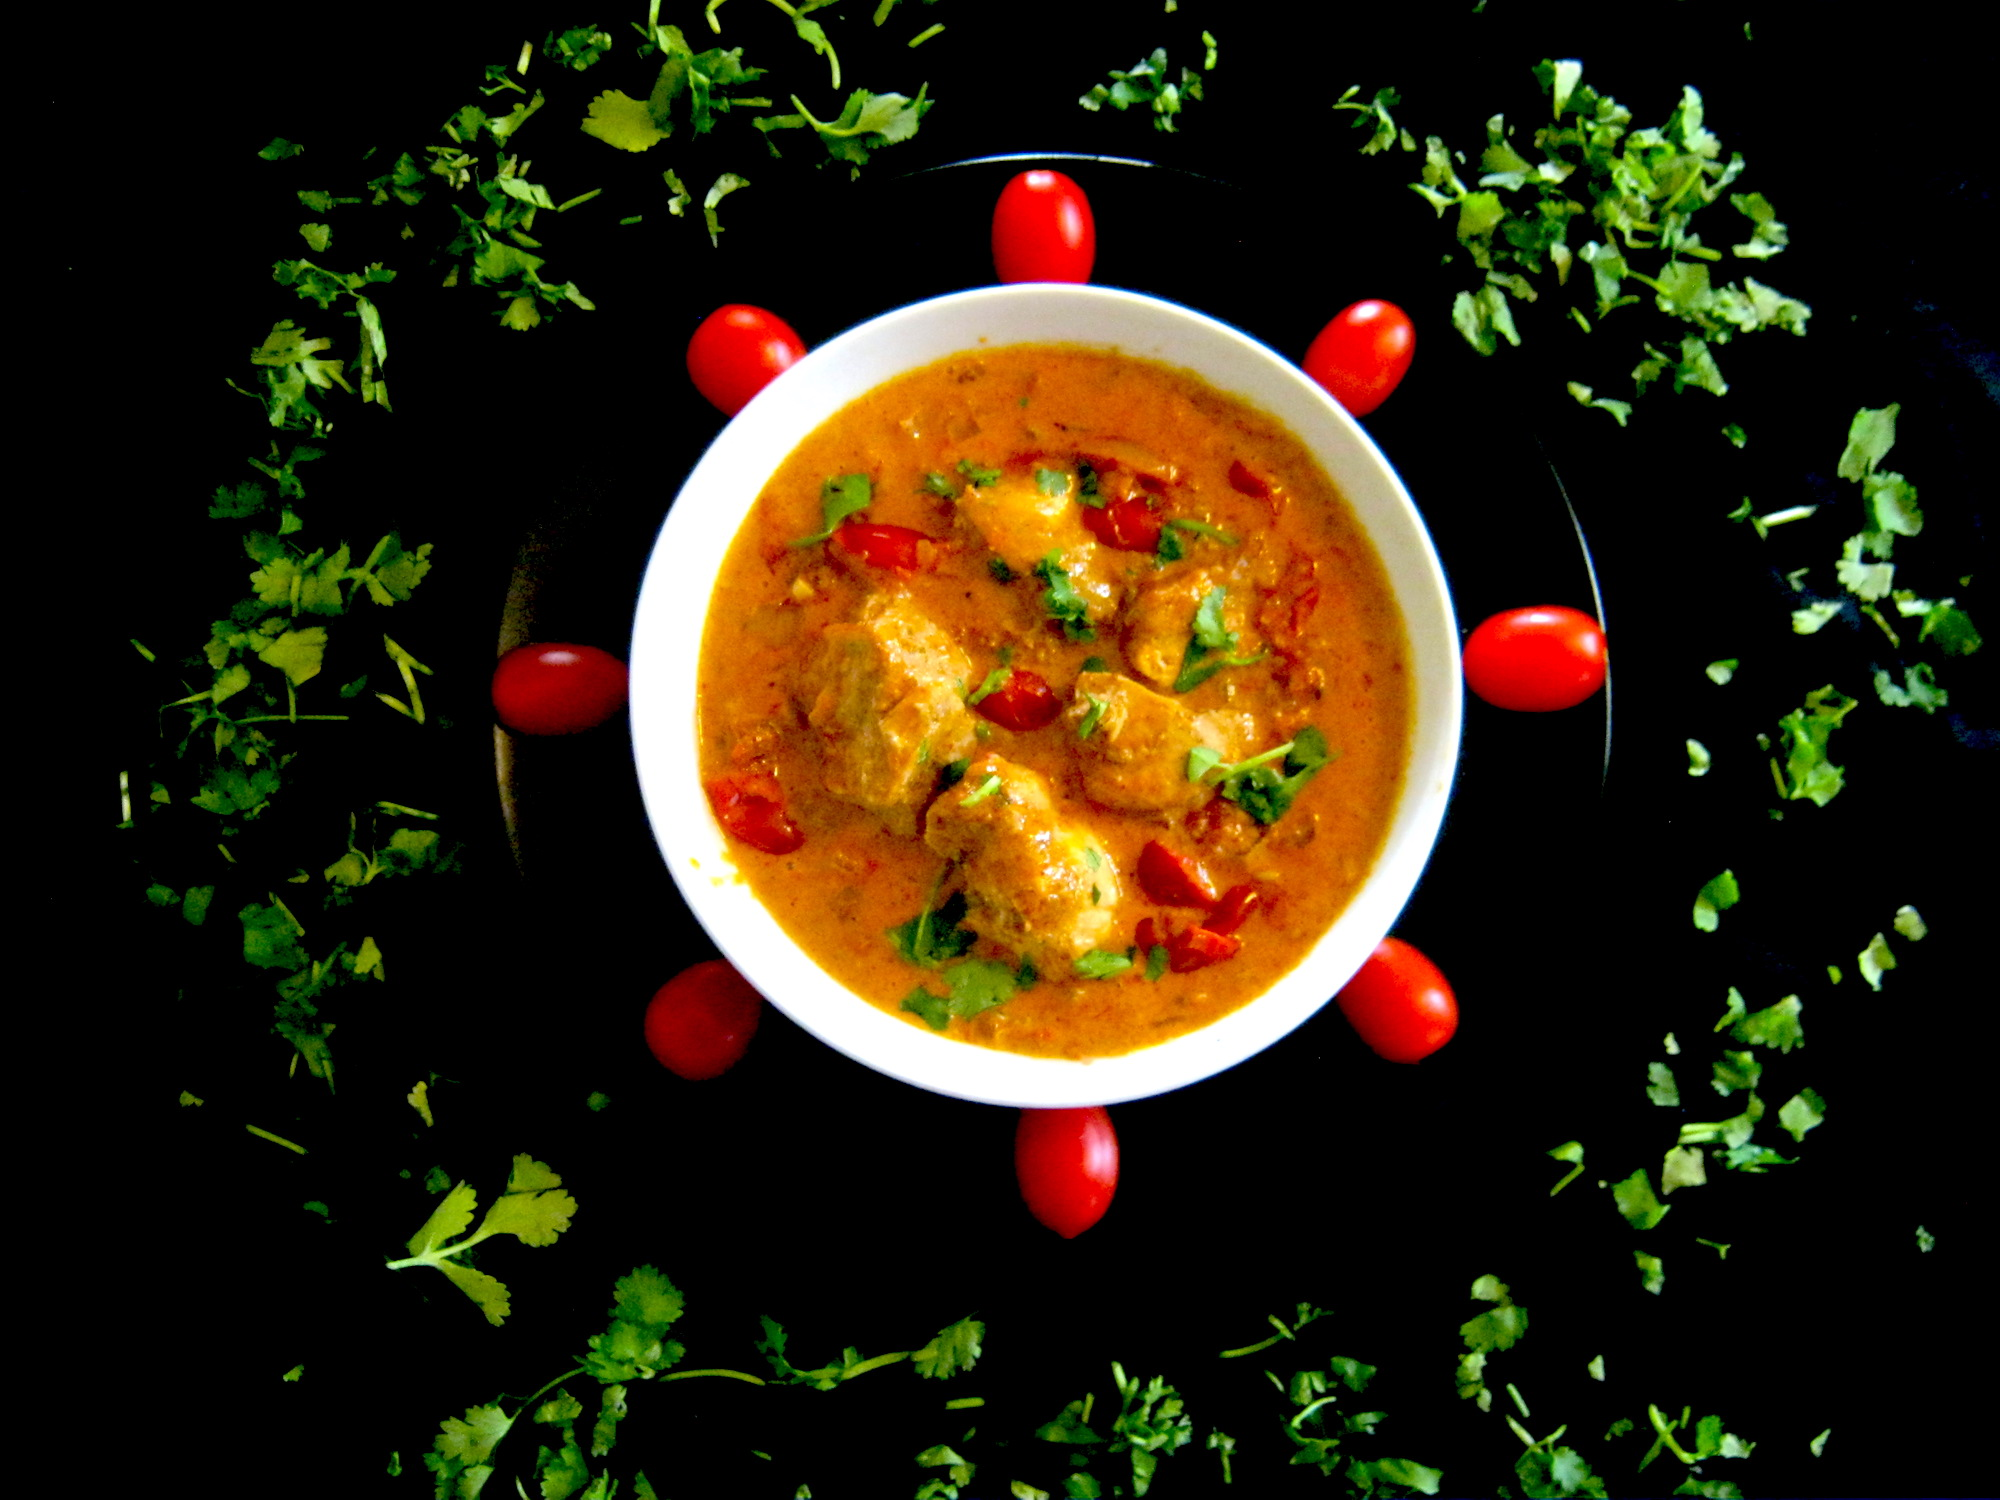 Butter chicken garnished with tomatoes and coriander leaves.